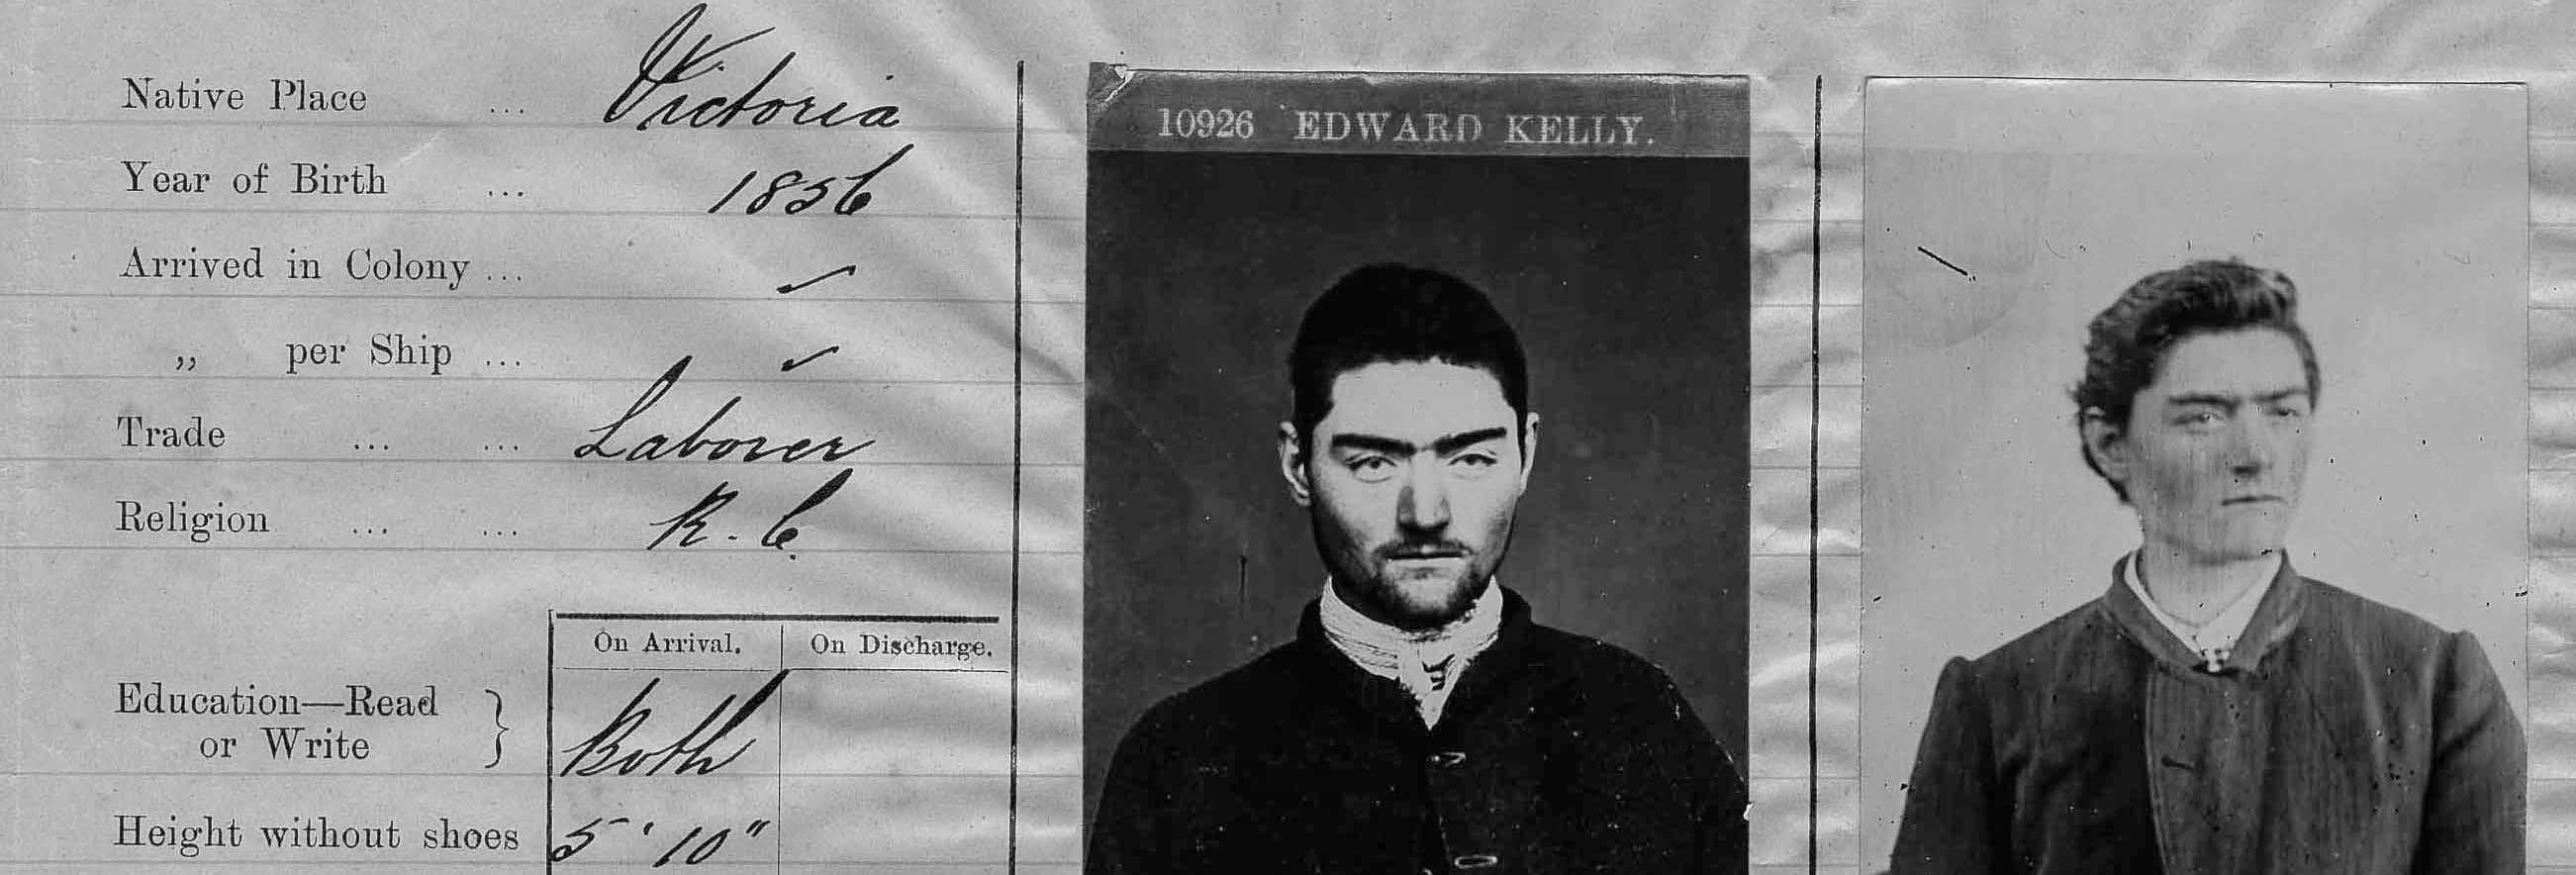 Ned Kelly historical record